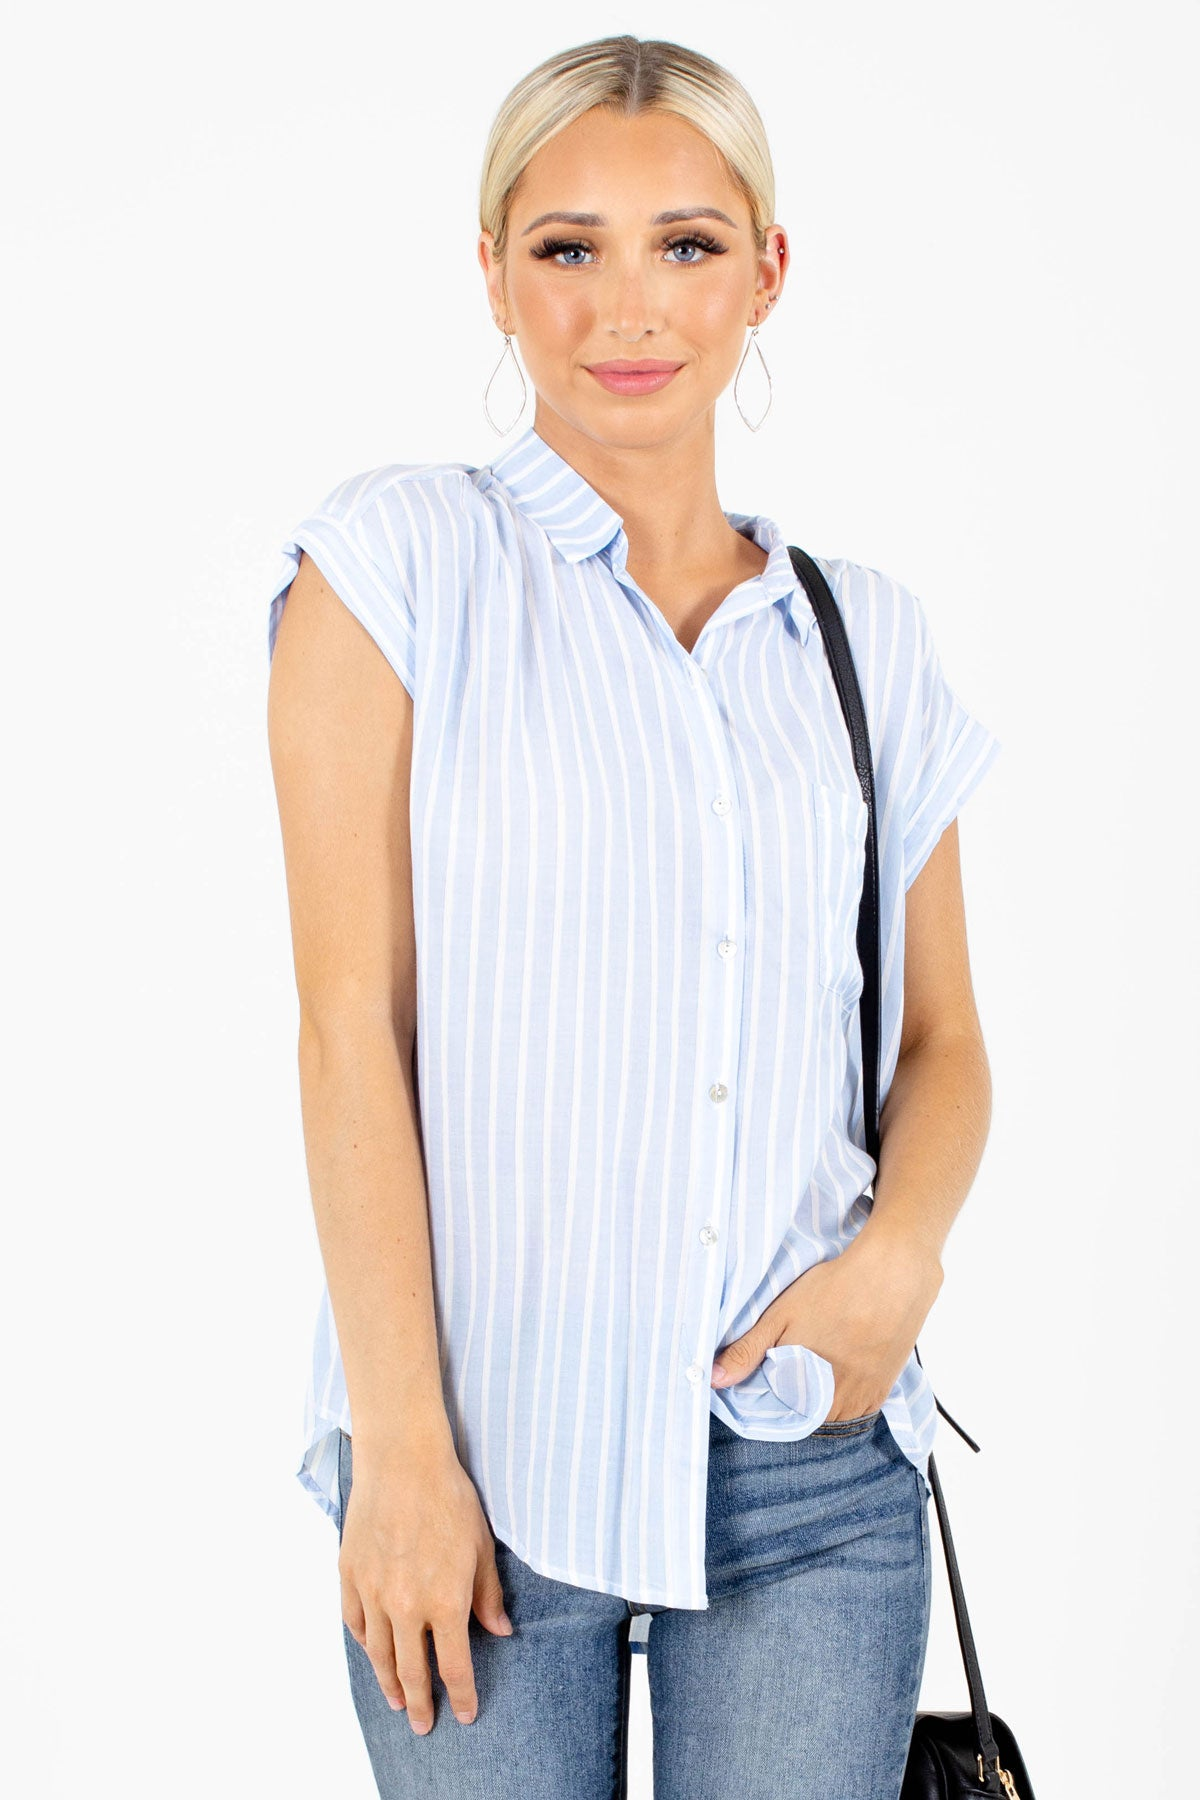 Blue and White Striped Boutique Shirts for Women